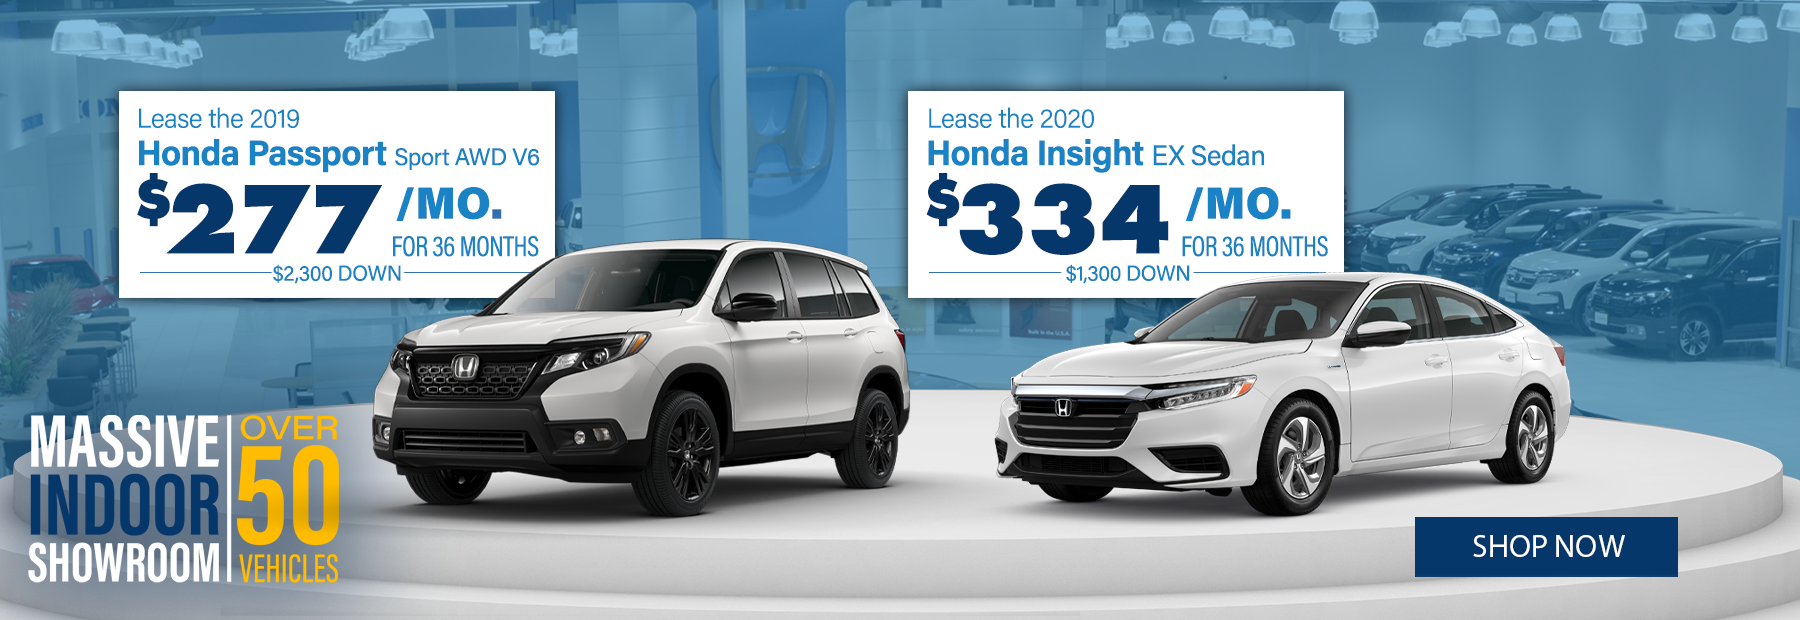 2020-honda-insight-passport-performance-kings-cincinnati